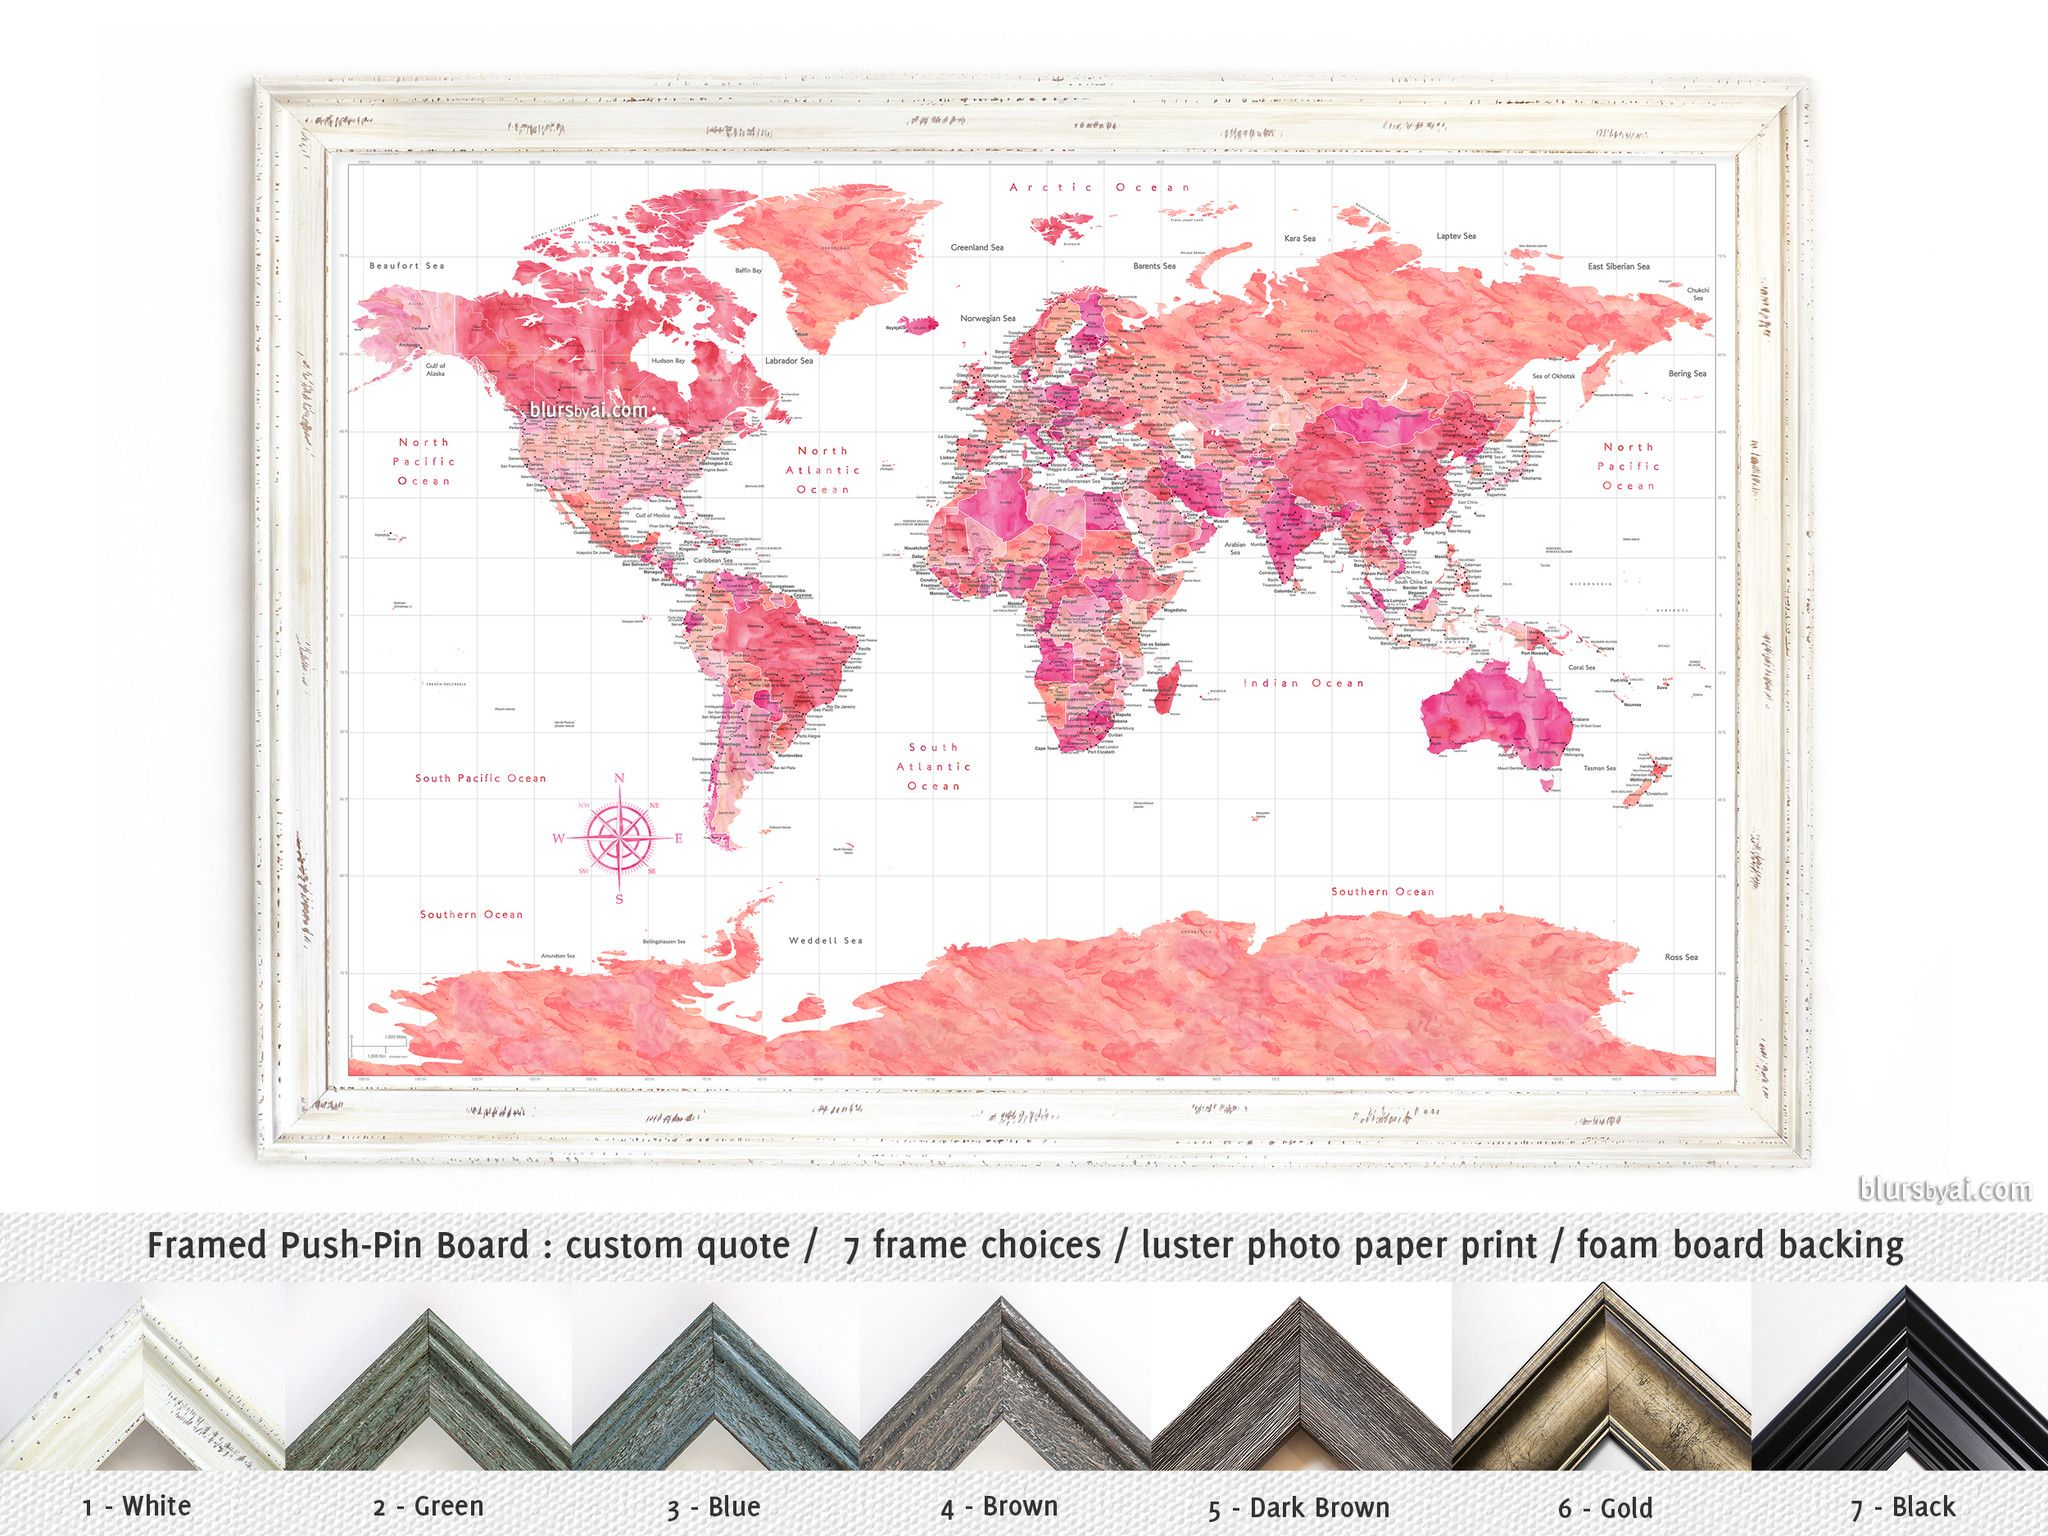 Elite framed push pin board Hot pink watercolor world map with